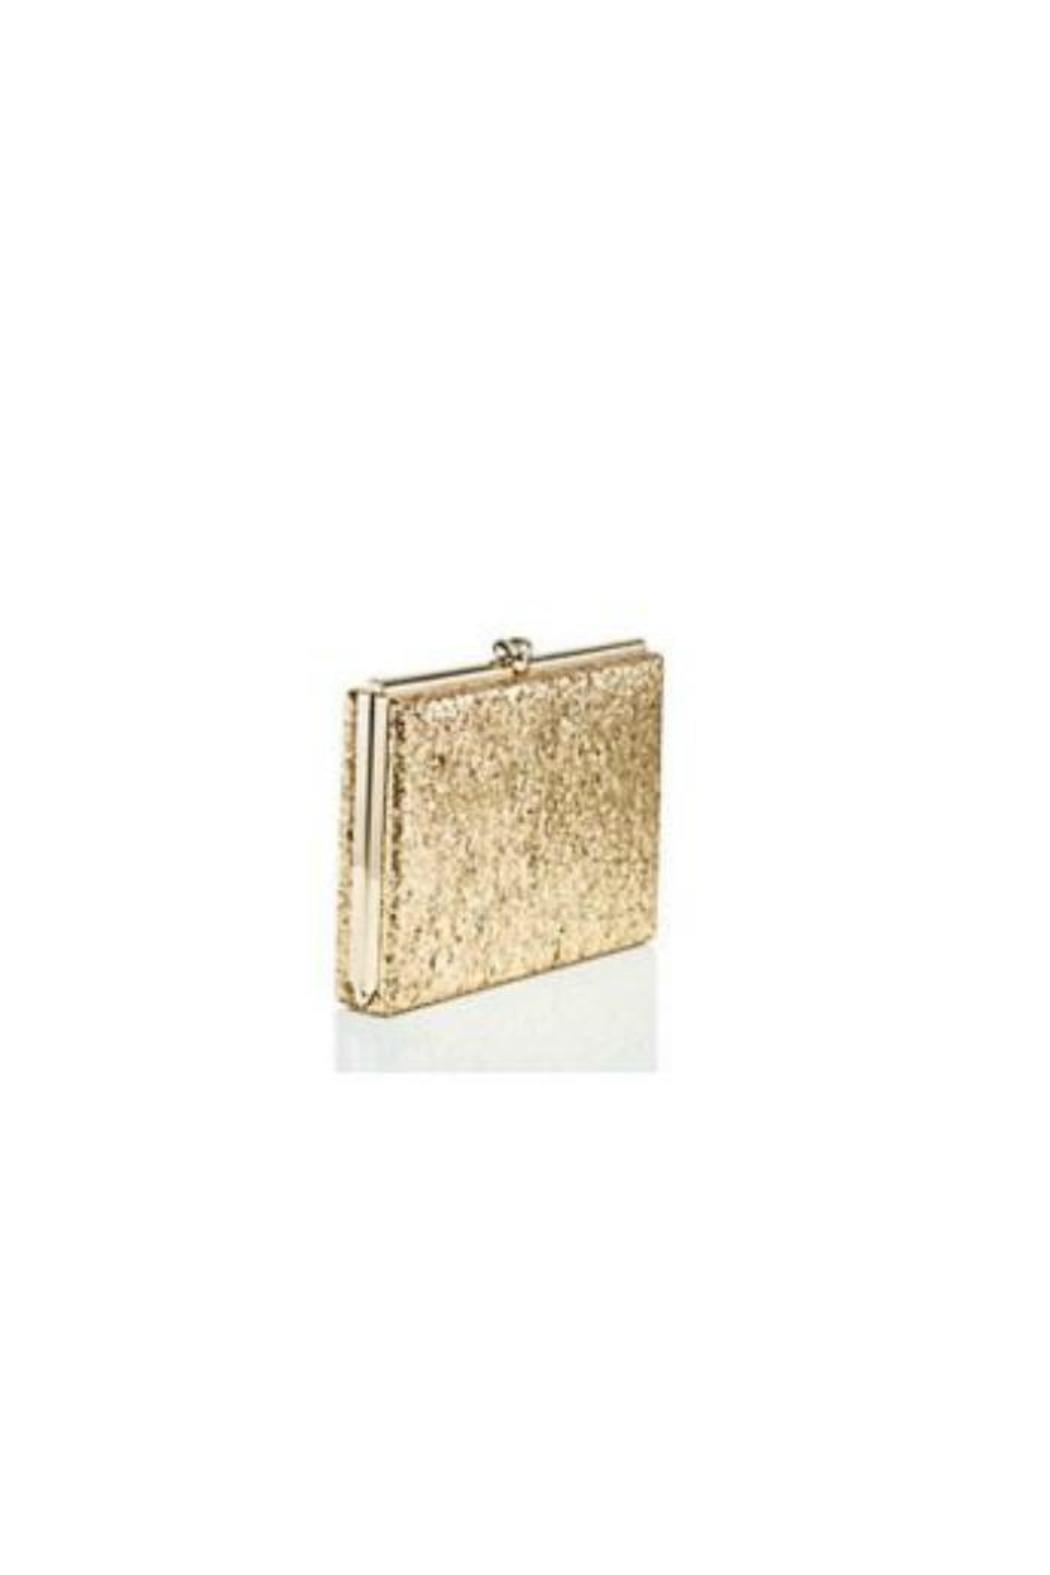 Kate Spade New York Gold Knot Clutch - Side Cropped Image